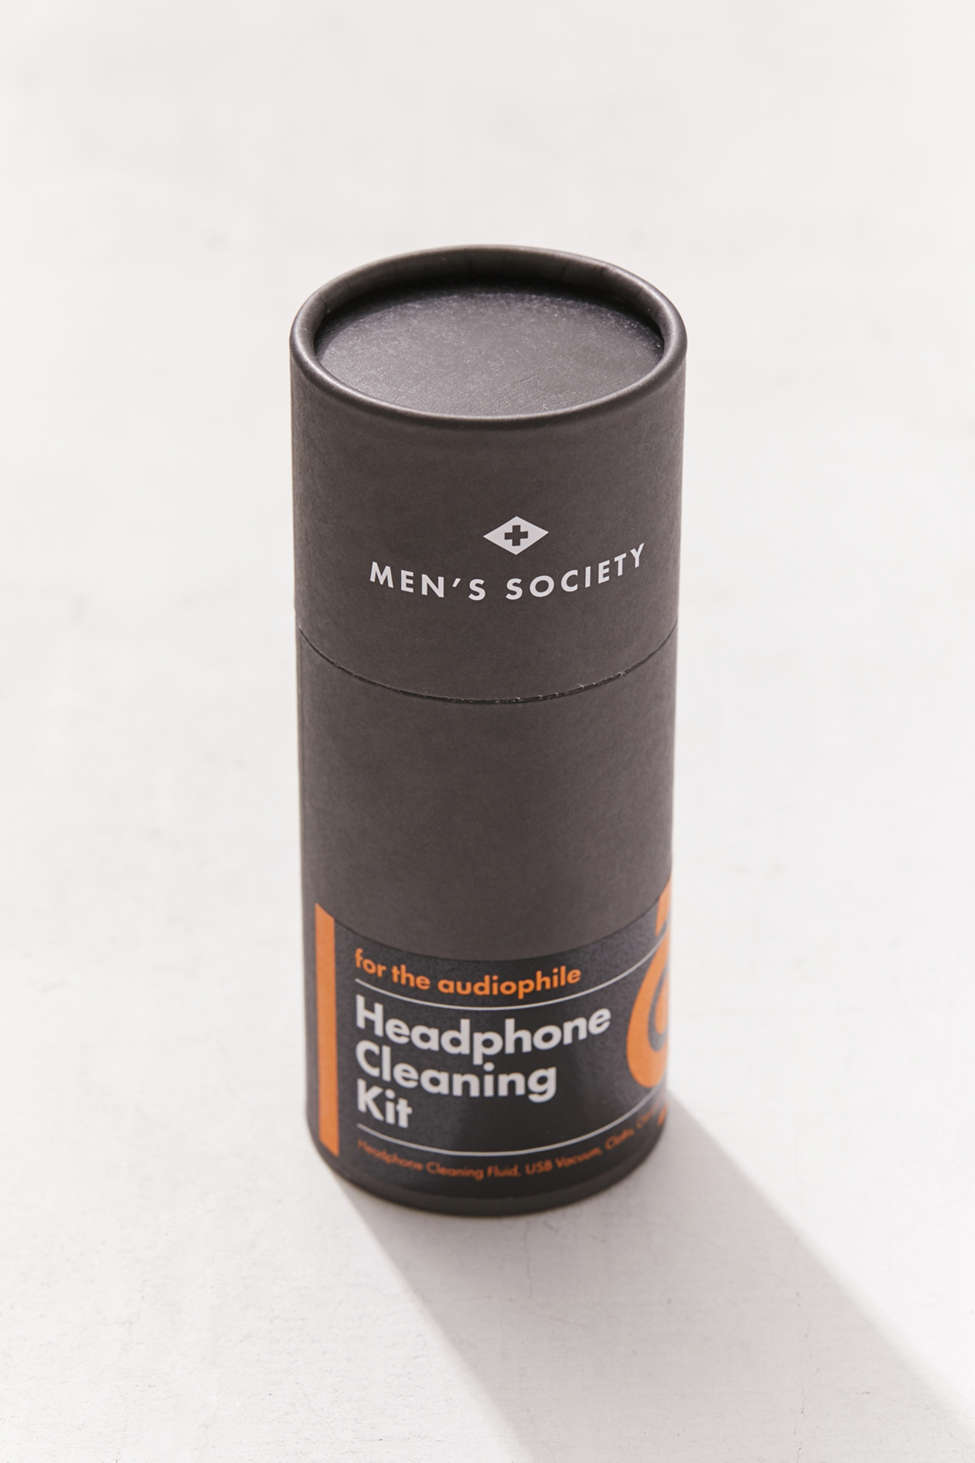 Men's Society Headphone Cleaning Kit by Men's Society